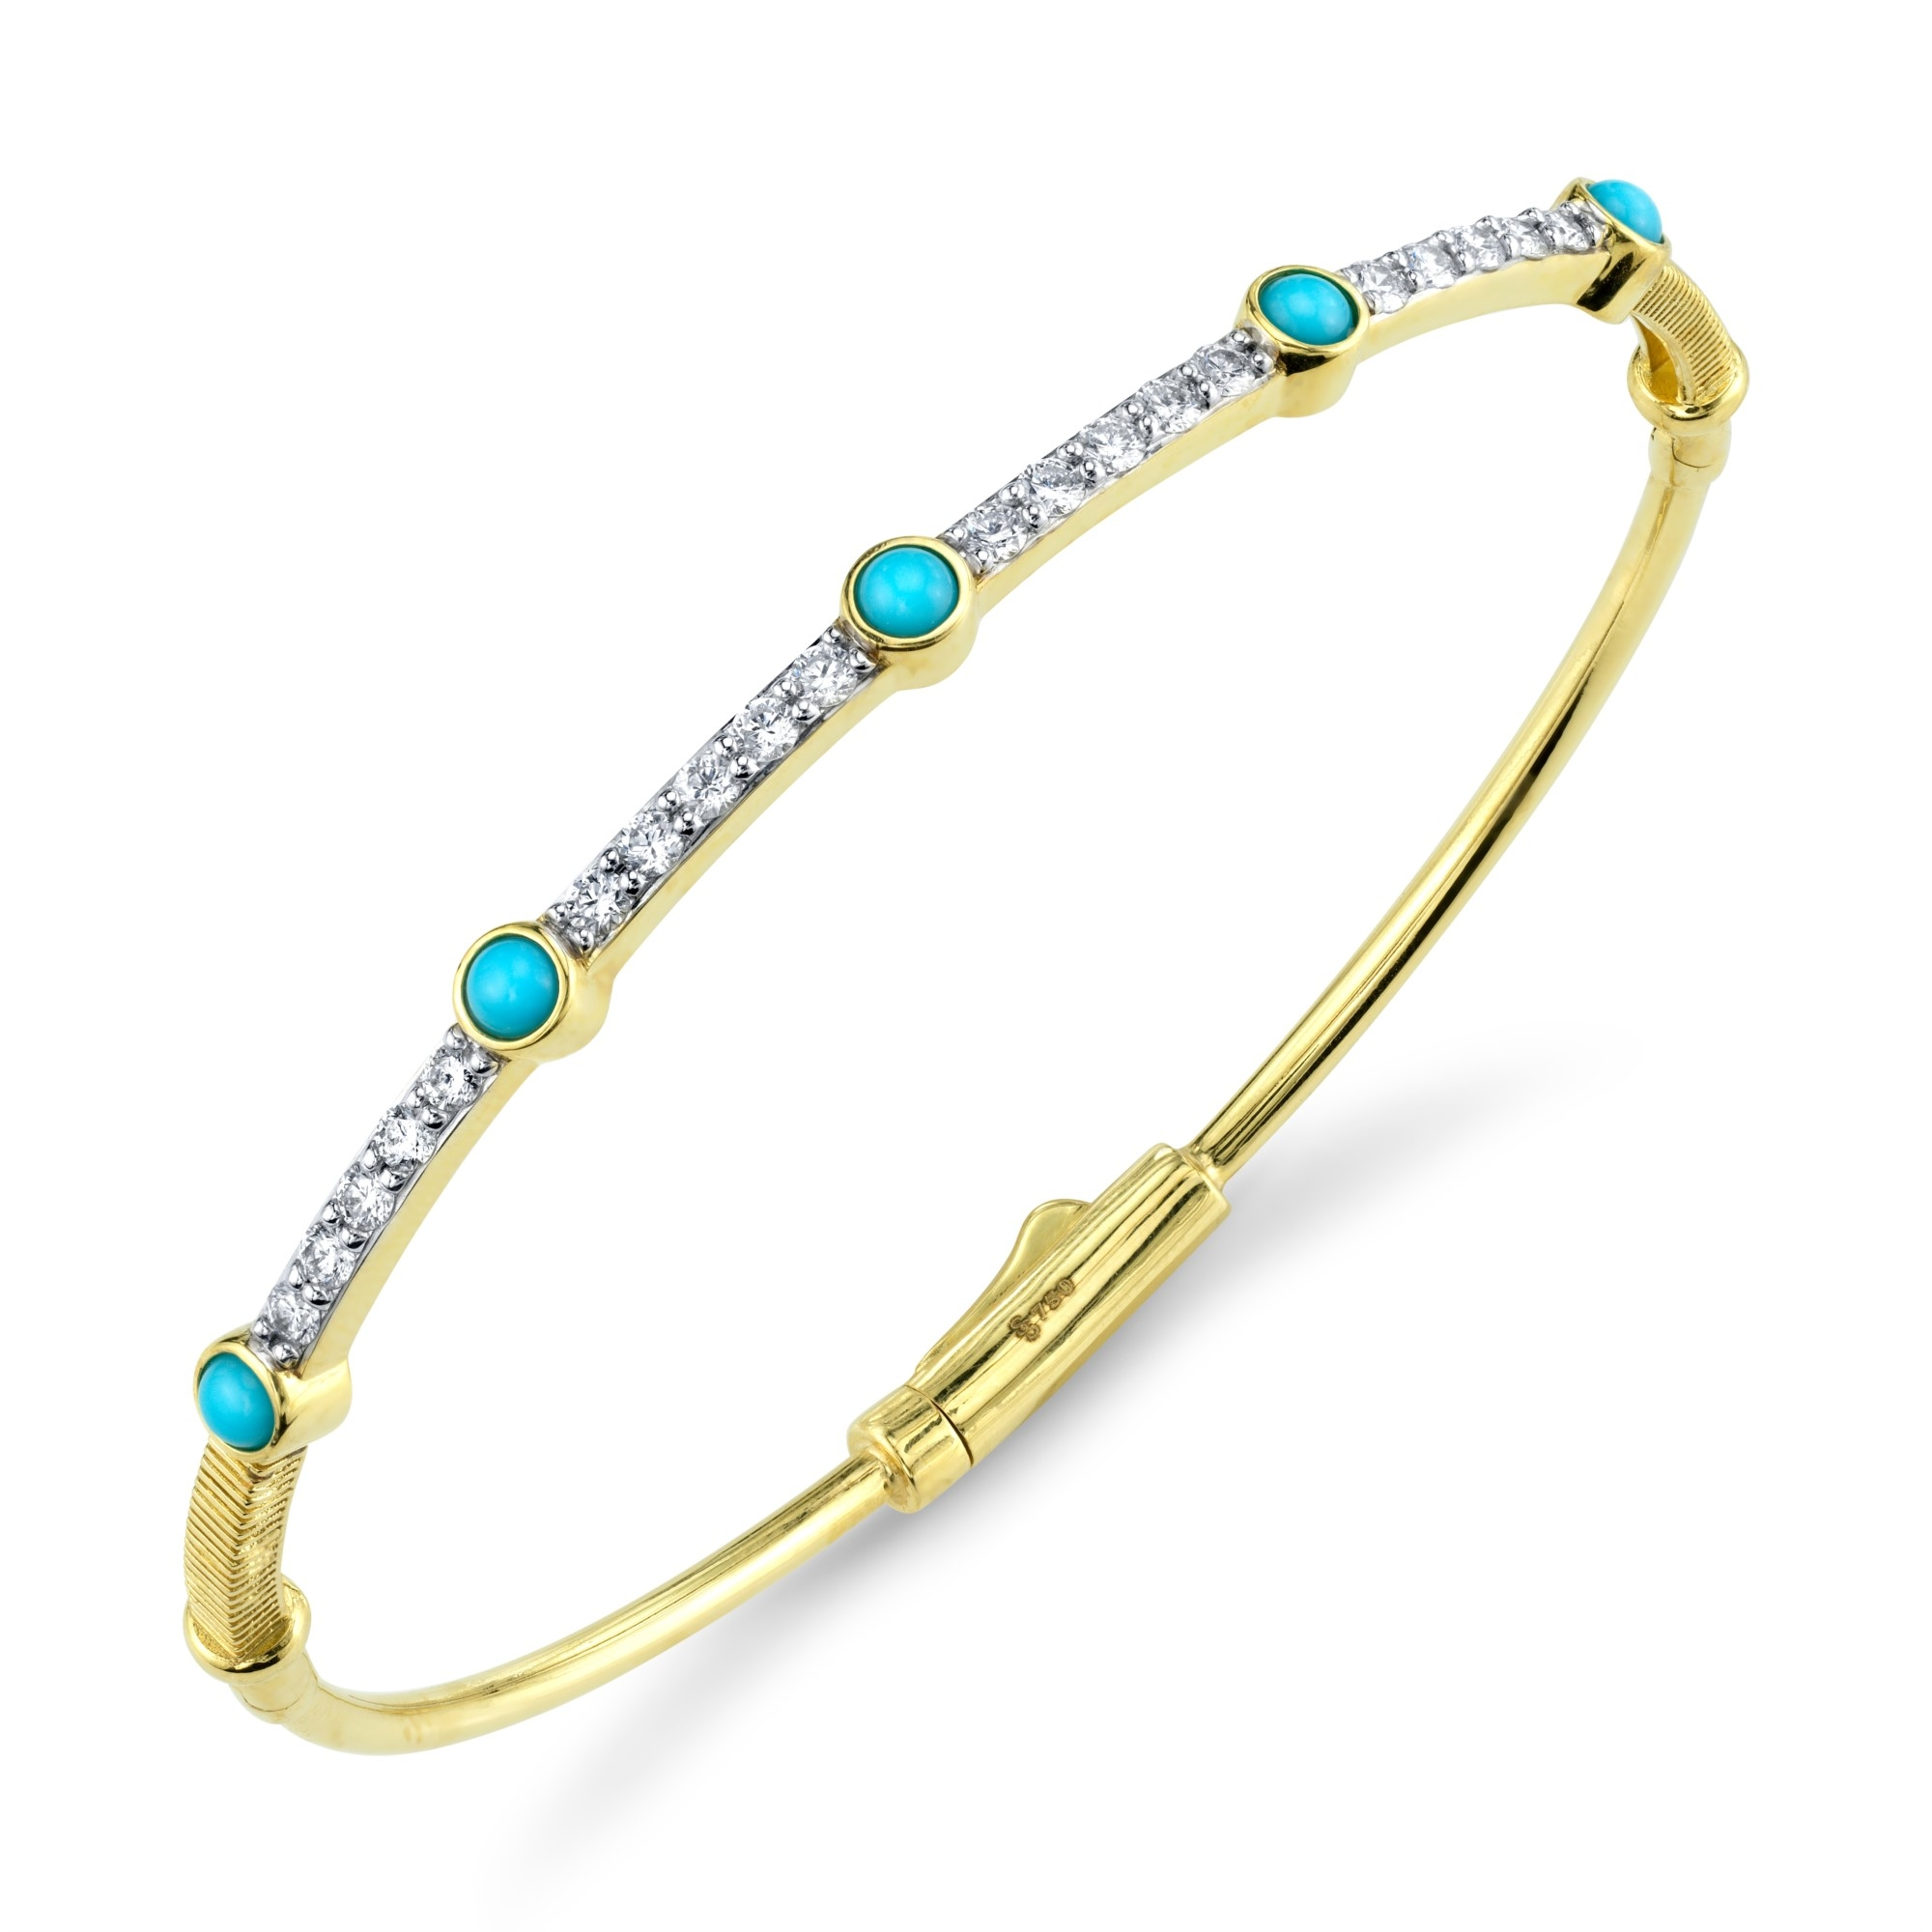 Sloane Street 18K Yellow Gold .61cts  Diamonds Gold Bangle with Stones B006F-TQ-WDCB-Y